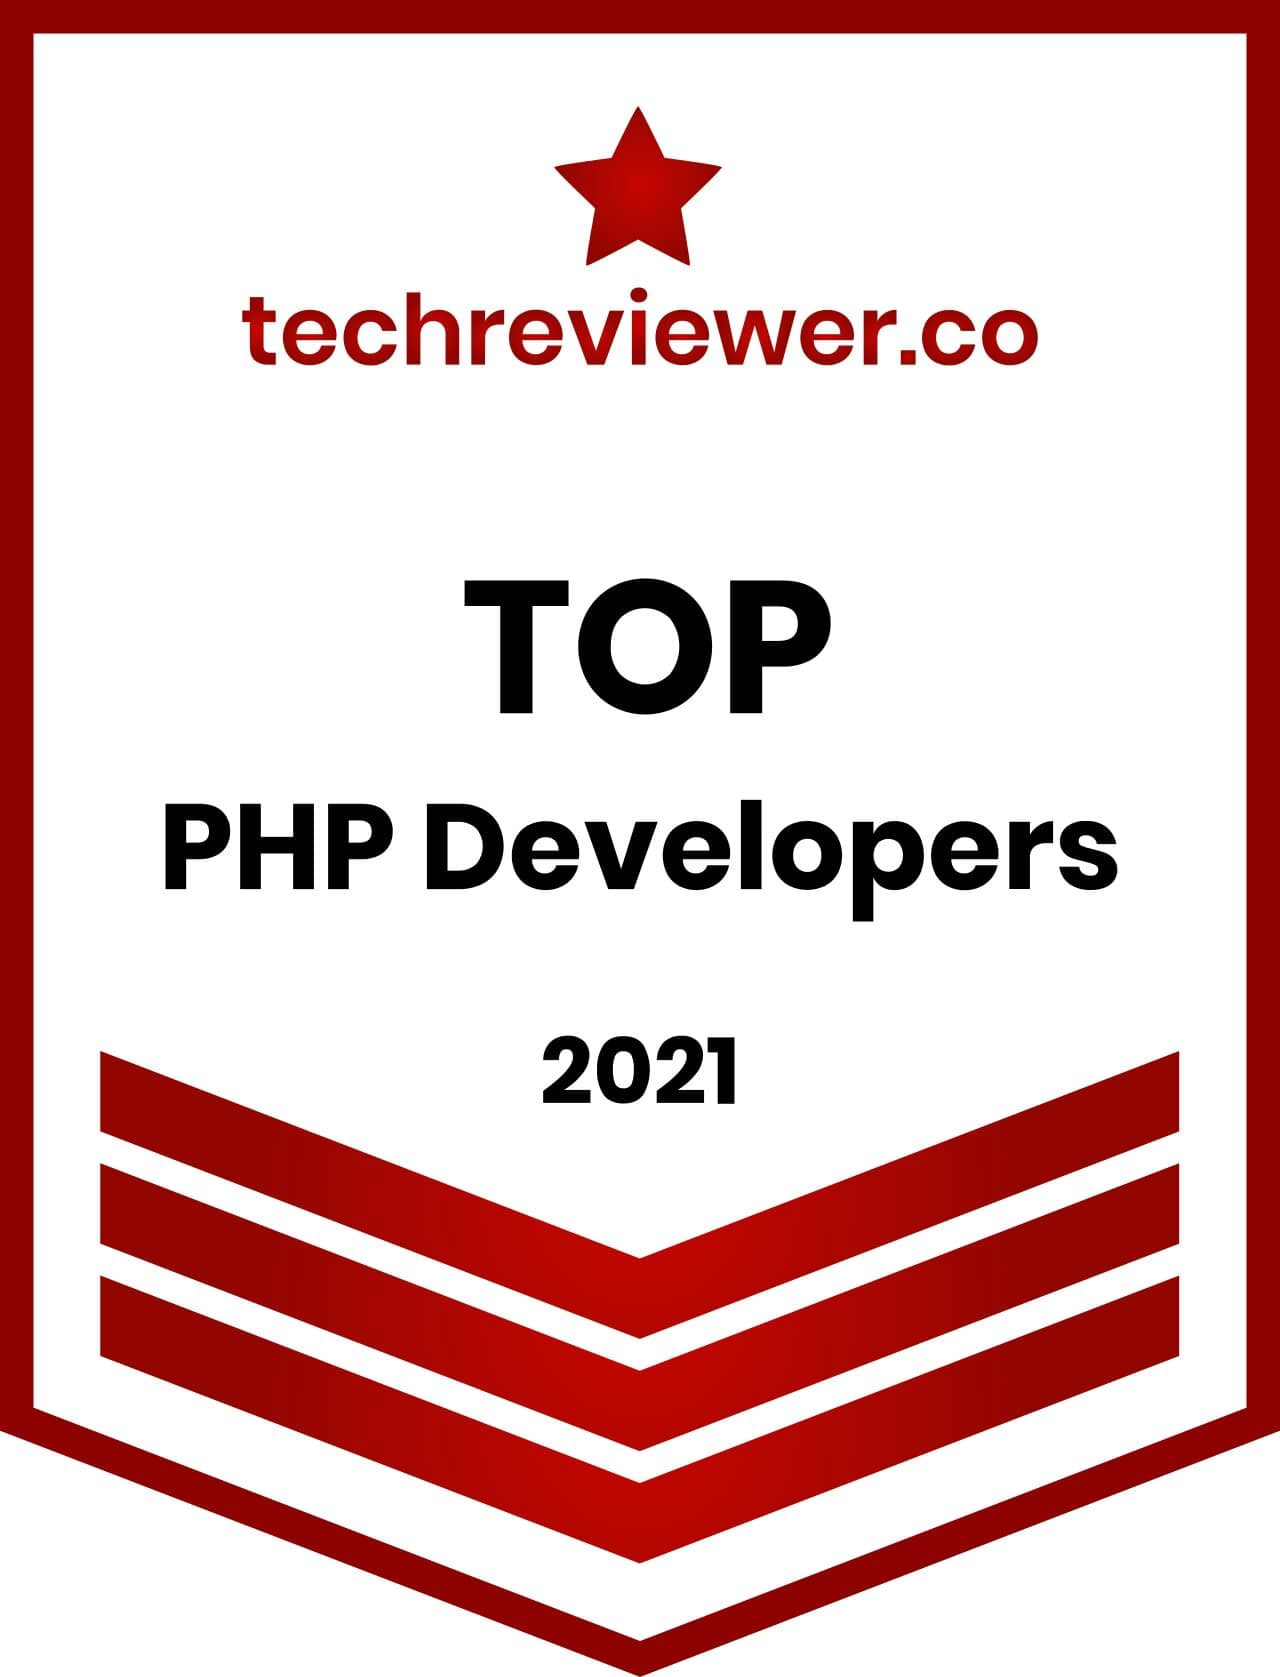 CodeRiders provides PHP development services and is appreciated by TechReviewer